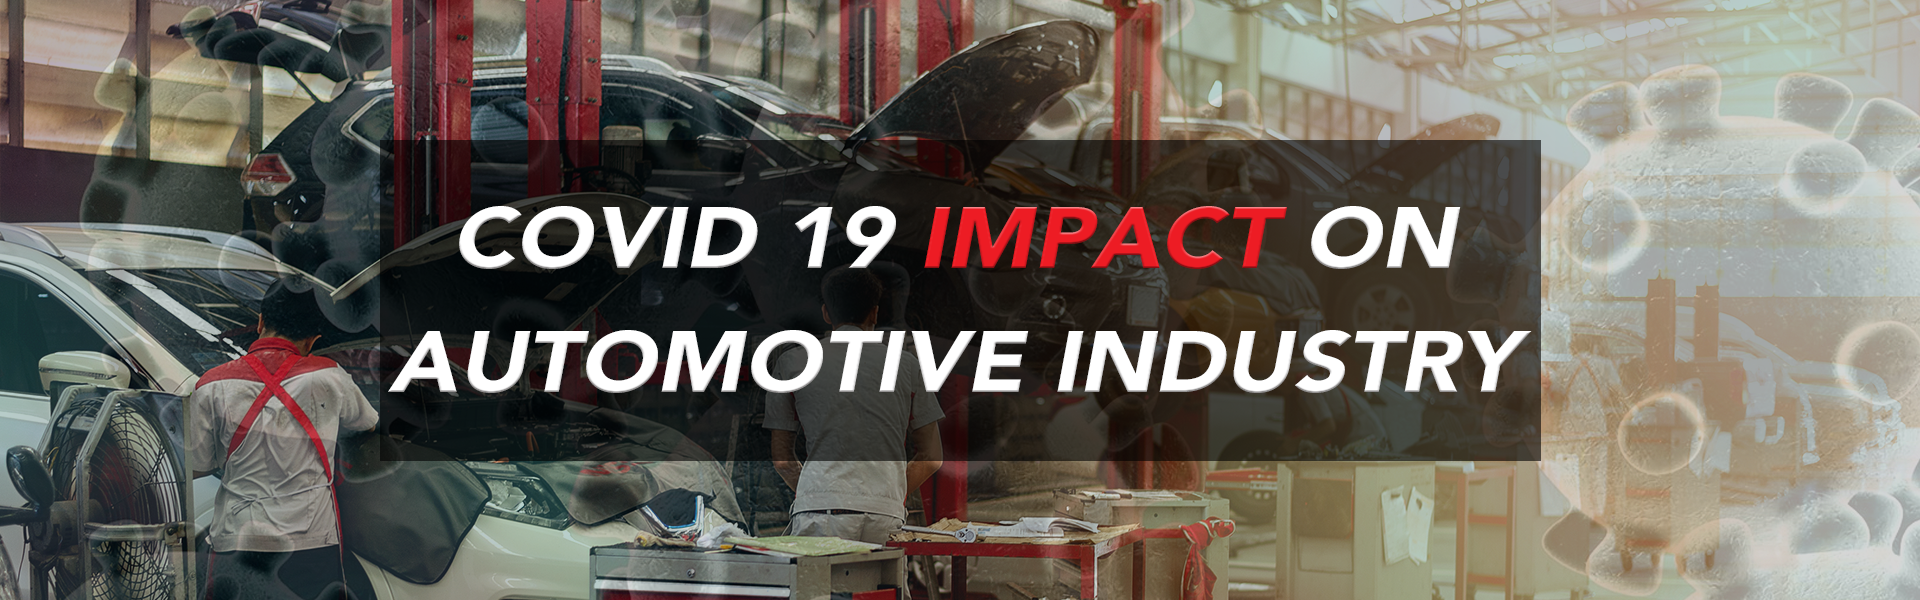 covid-19 impact on automotive industry